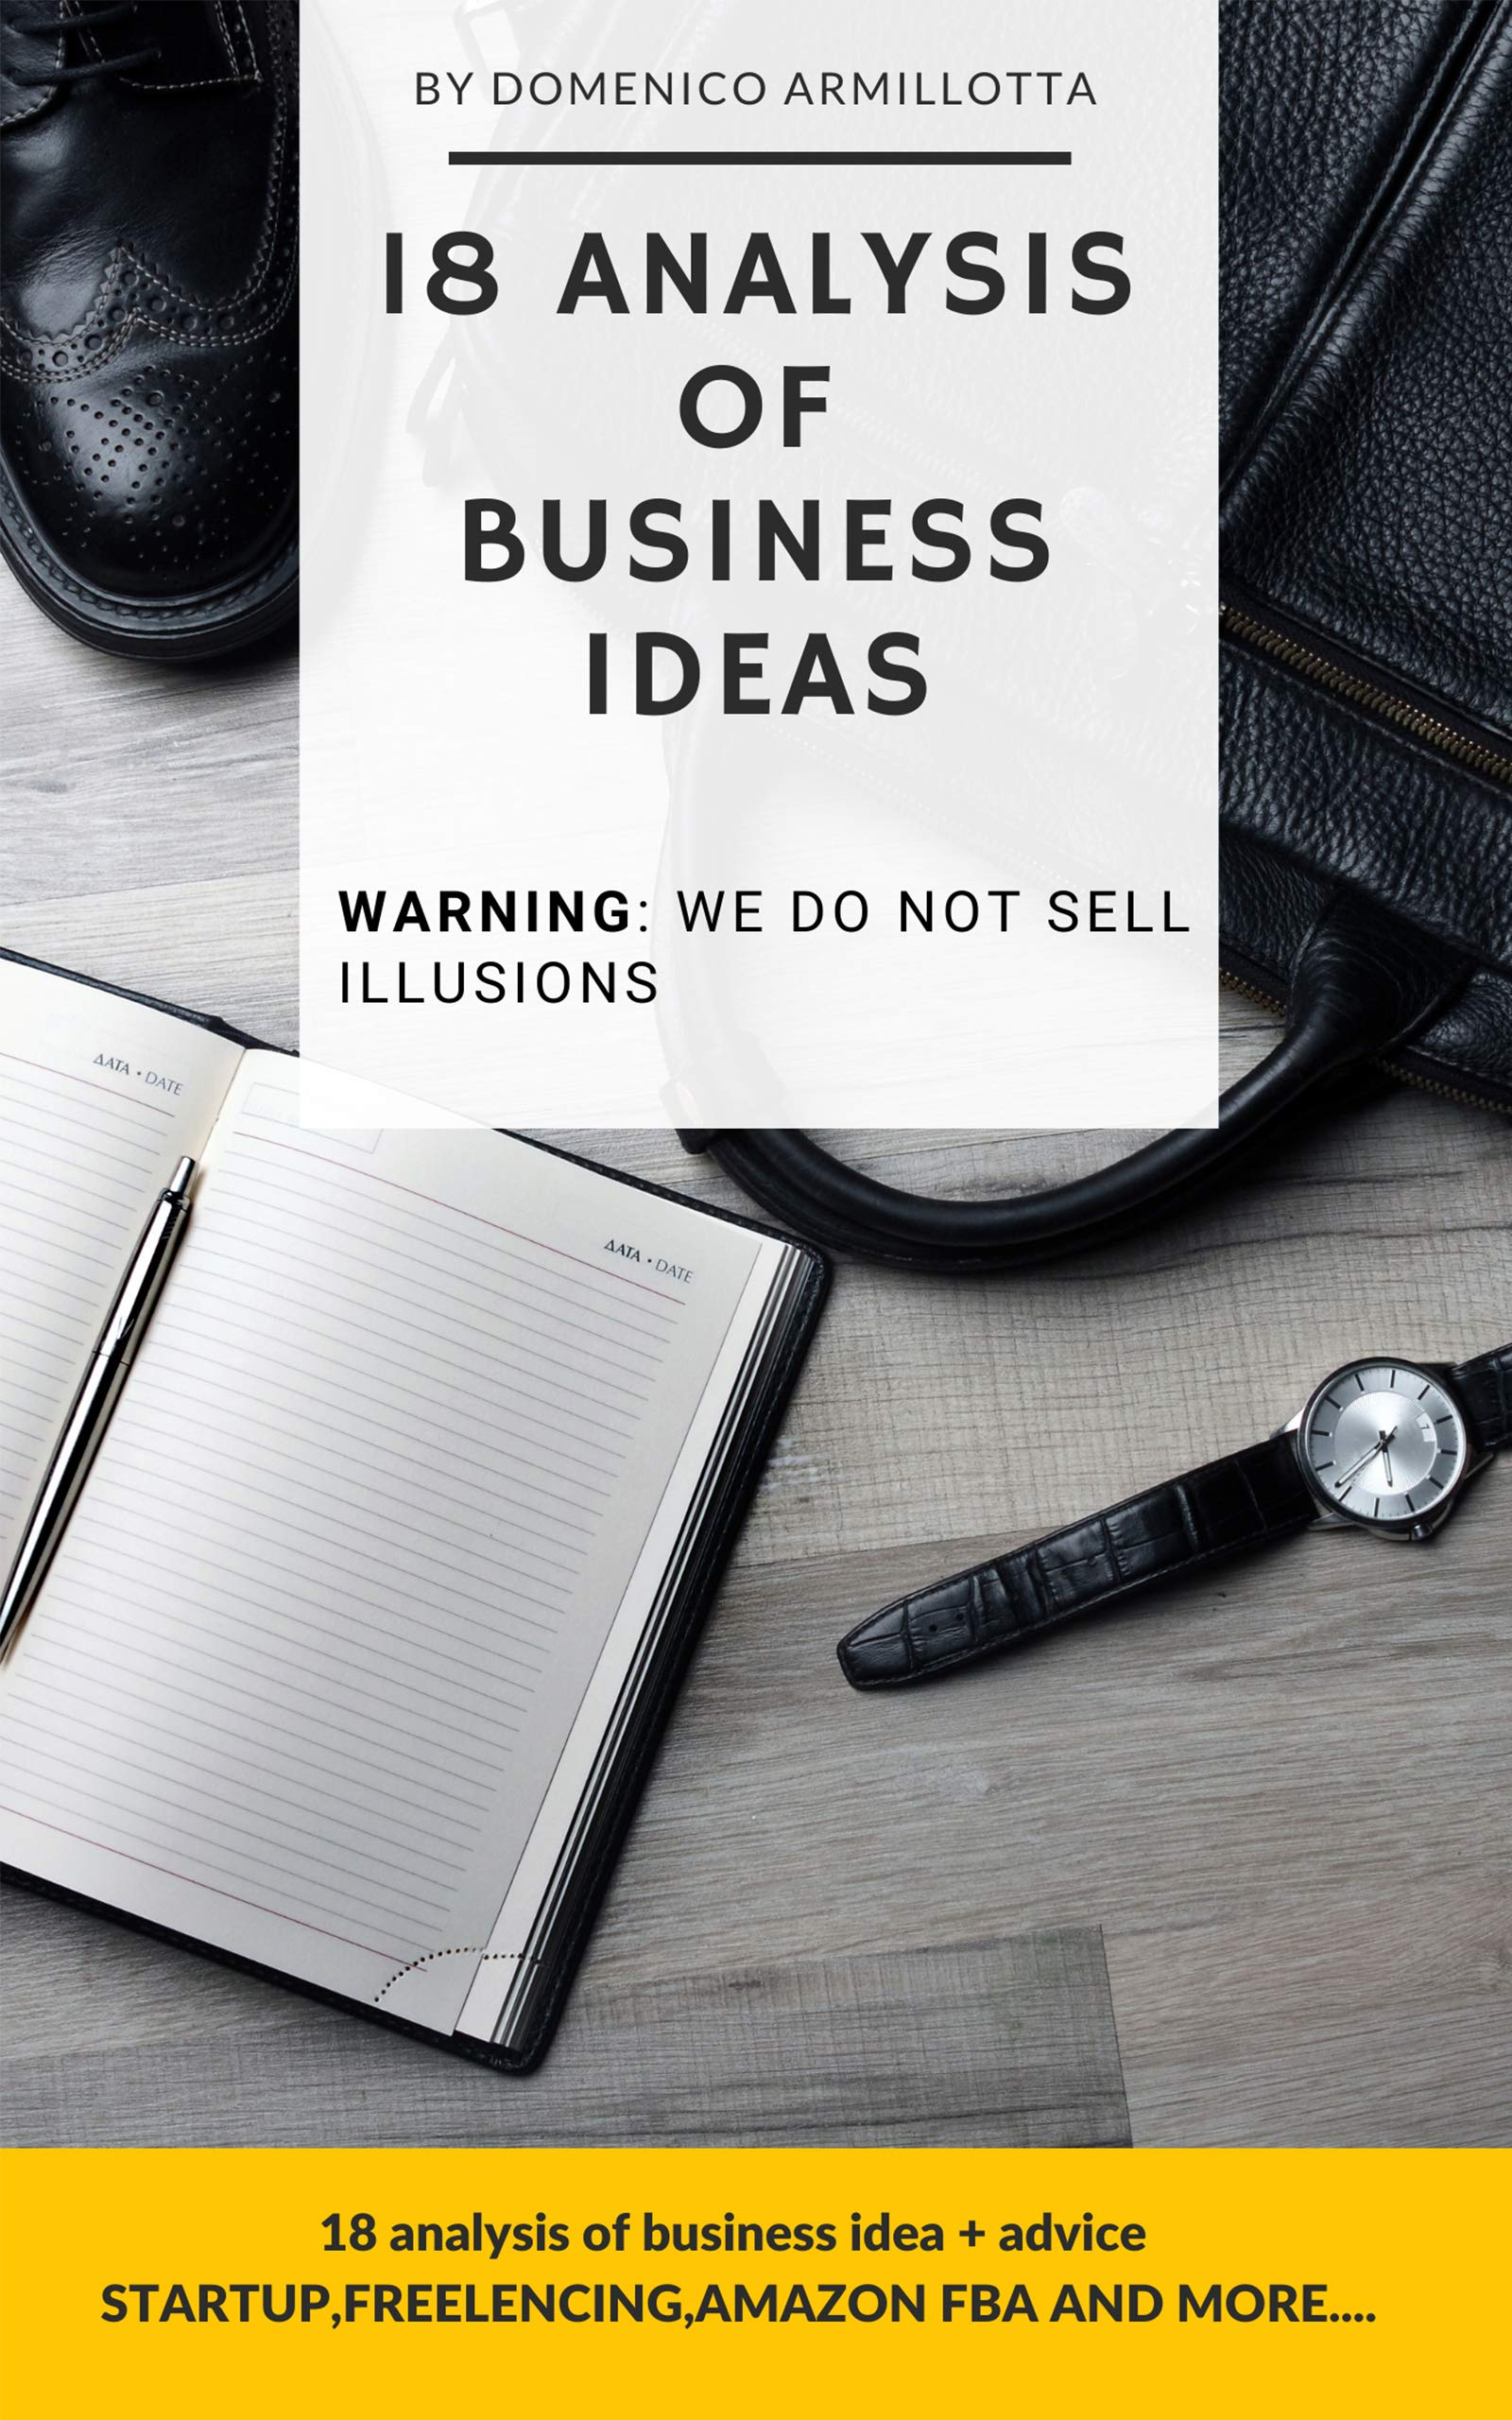 18 Analysis of Business Ideas: STARTUP,FREELENCING,AMAZON FBA AND MORE...